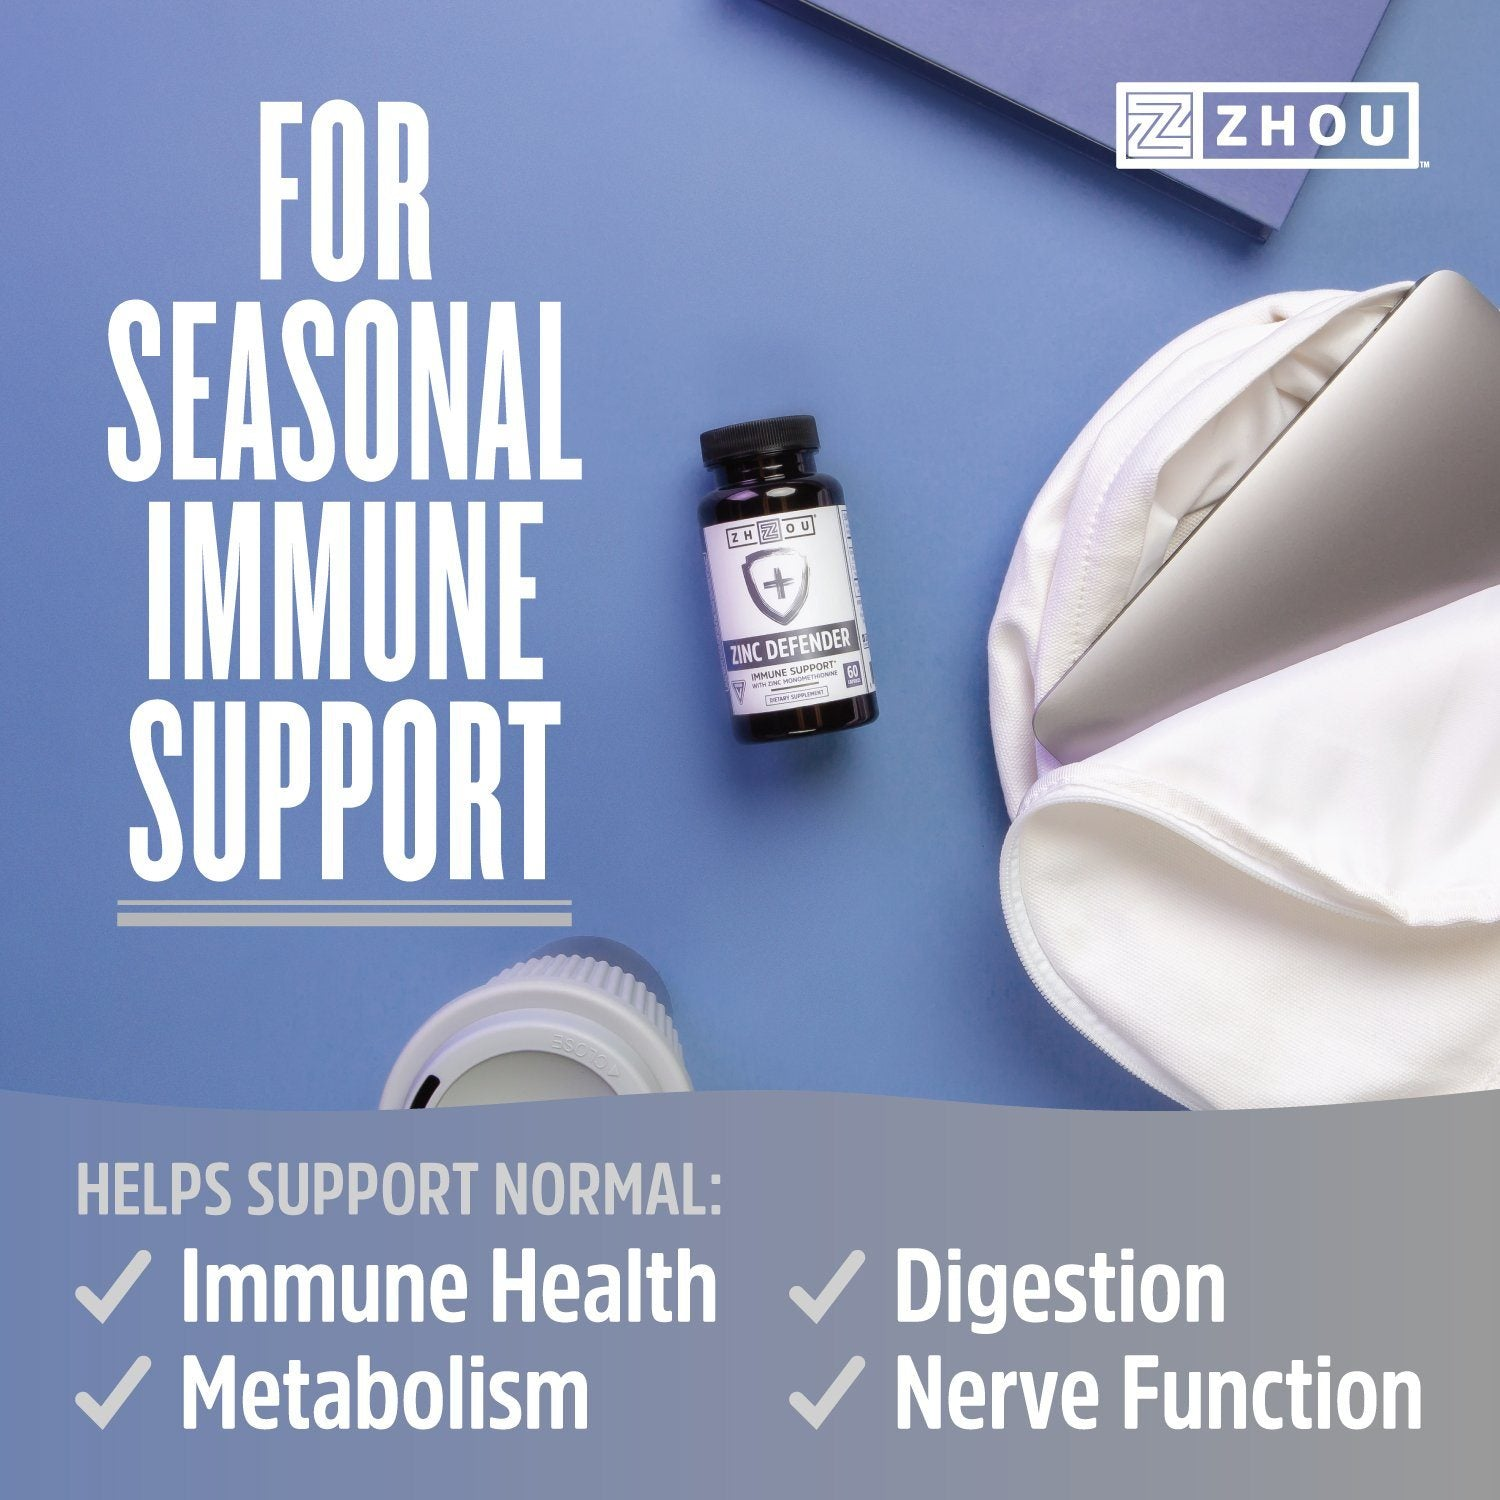 Helps support normal immune health, metabolism, digestion, and nerve function.